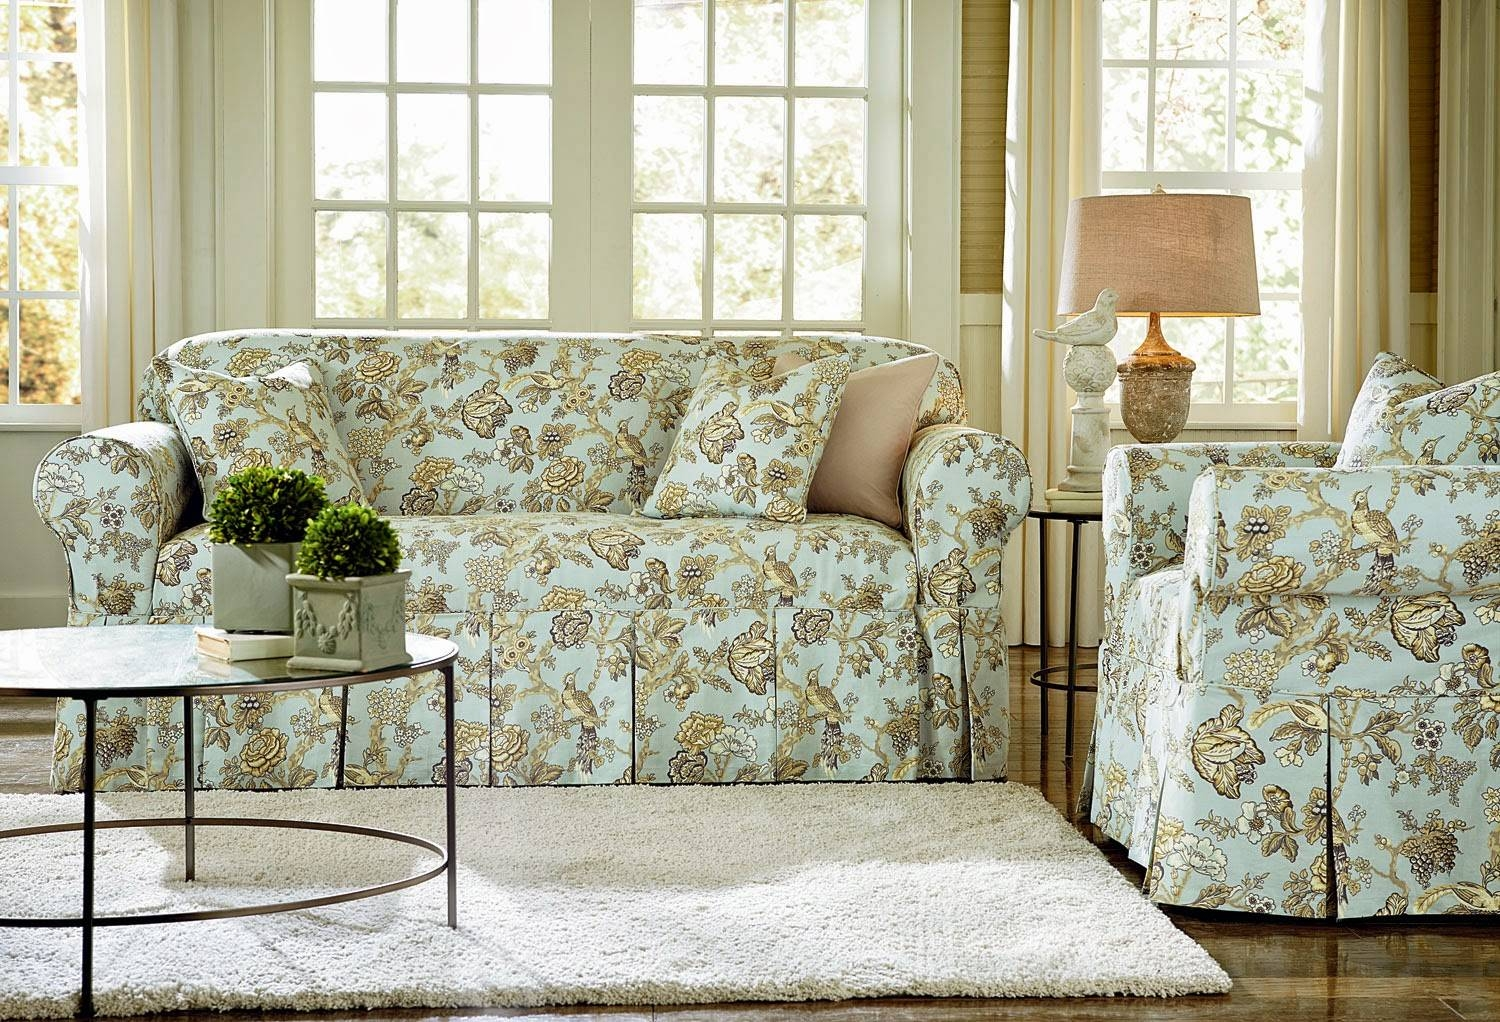 Furniture: Contemporary Sofa Design With Sure Fit Couch Covers With Covers For Sofas (View 6 of 30)